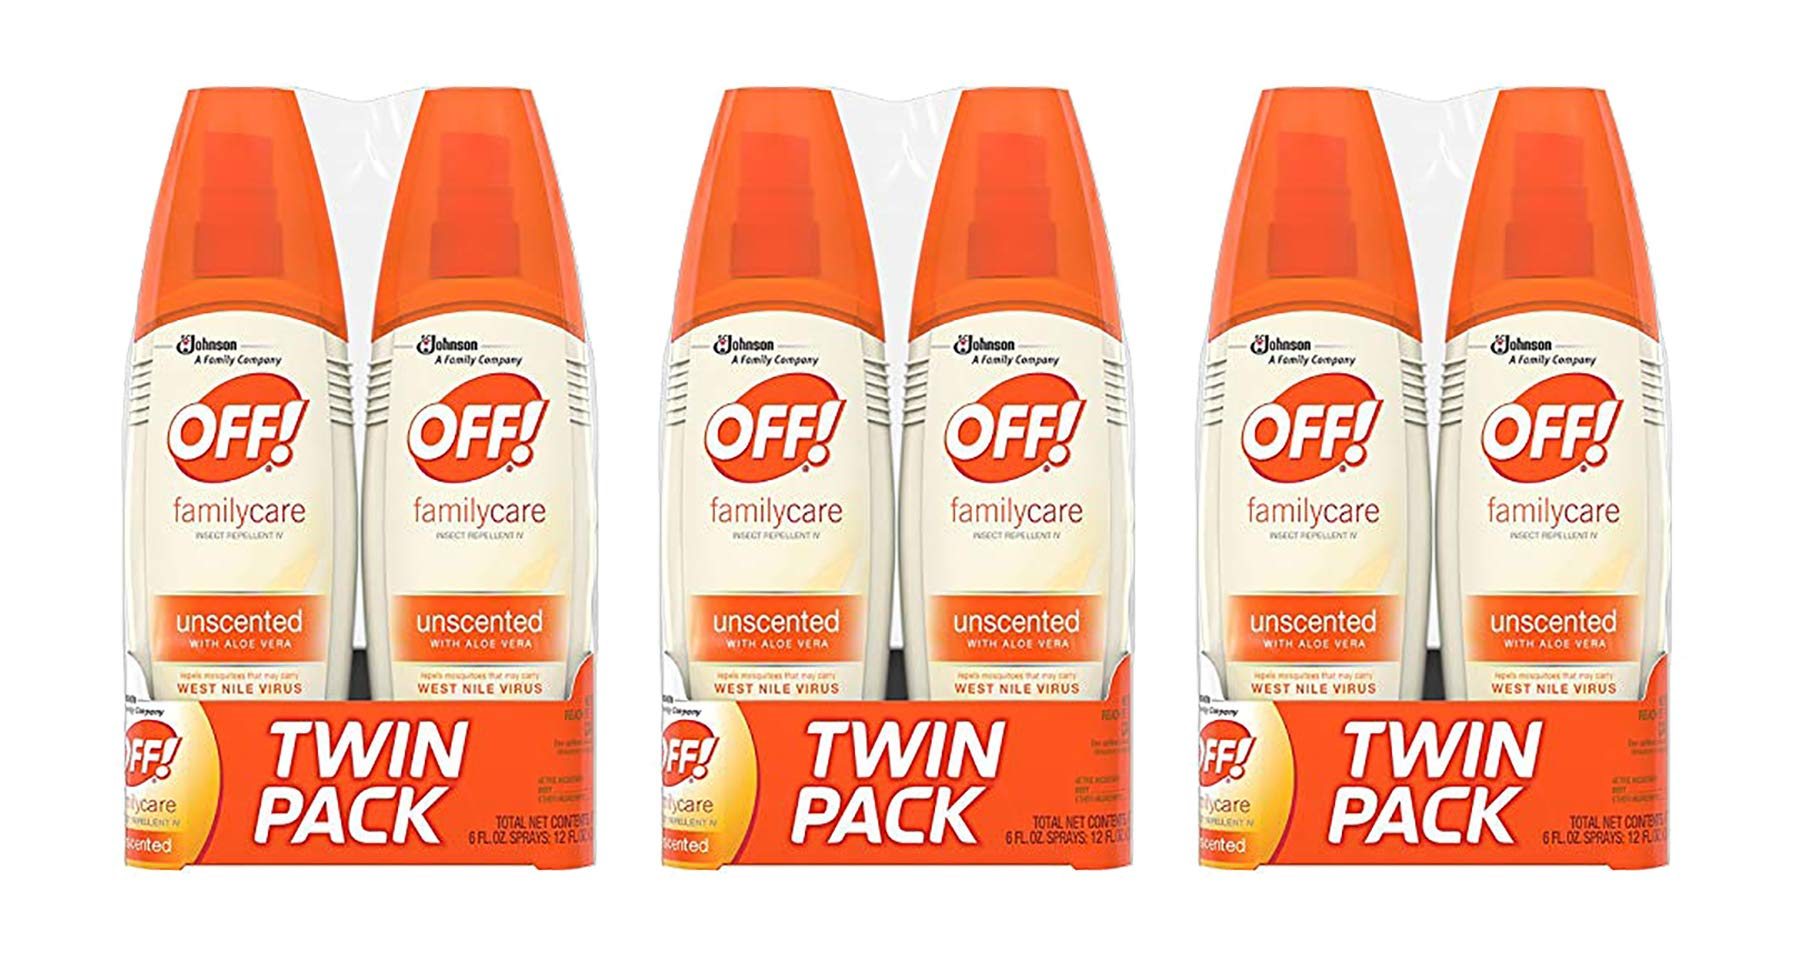 OFF! FamilyCare Insect Repellent IV Unscented, 6 oz (Pack - 3) by OFF!